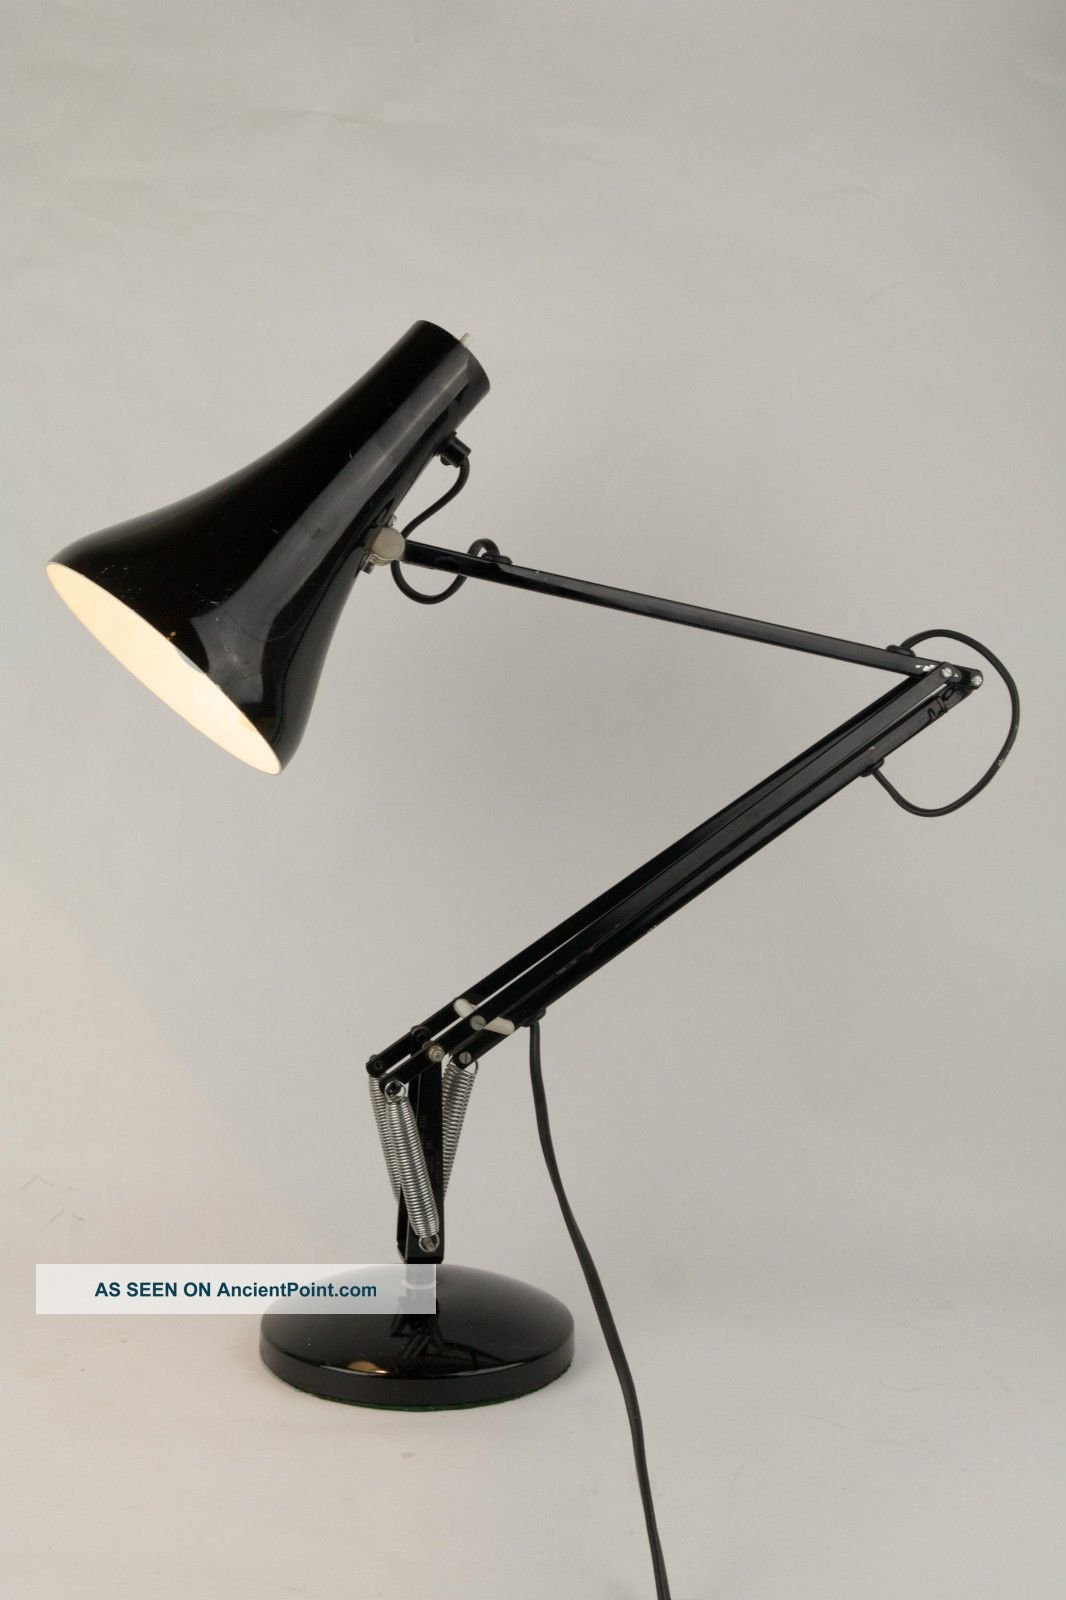 Vintage Herbert Terry & Sons Anglepoise Model 90 Lamp In Black - Made In England 20th Century photo